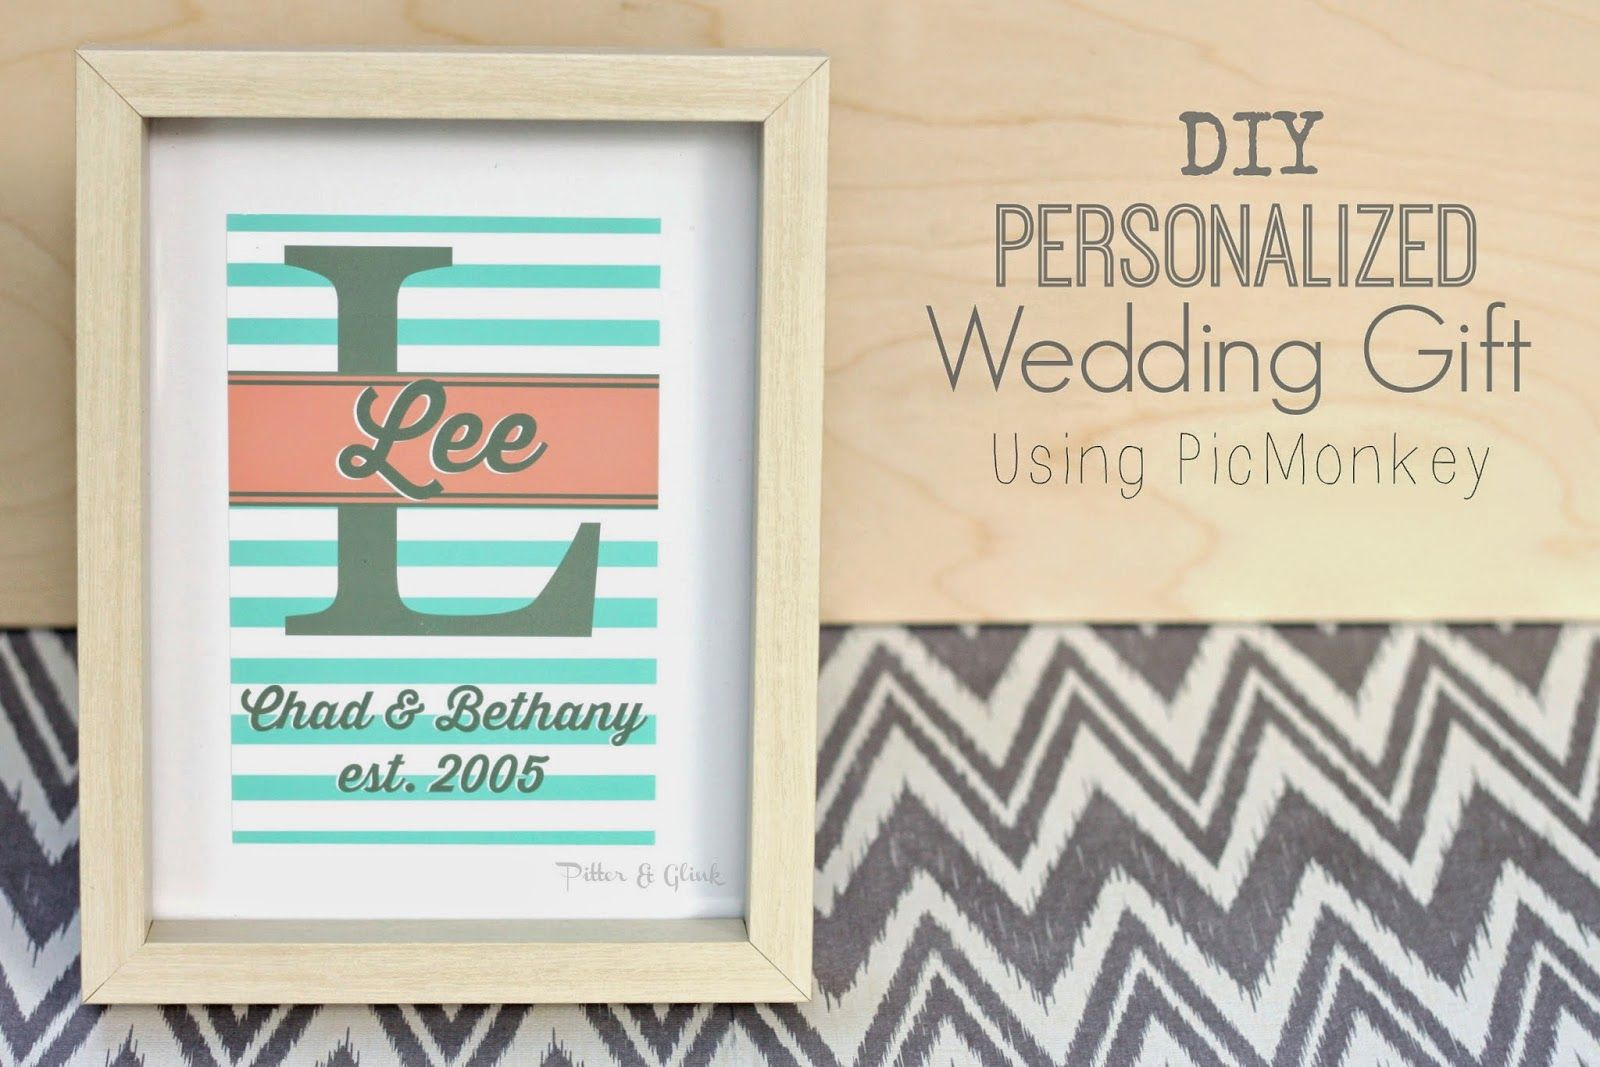 Create an inexpensive, personalized wedding gift using PicMonkey, digital scrapbook paper, and an elegant frame (we can help with that one!).